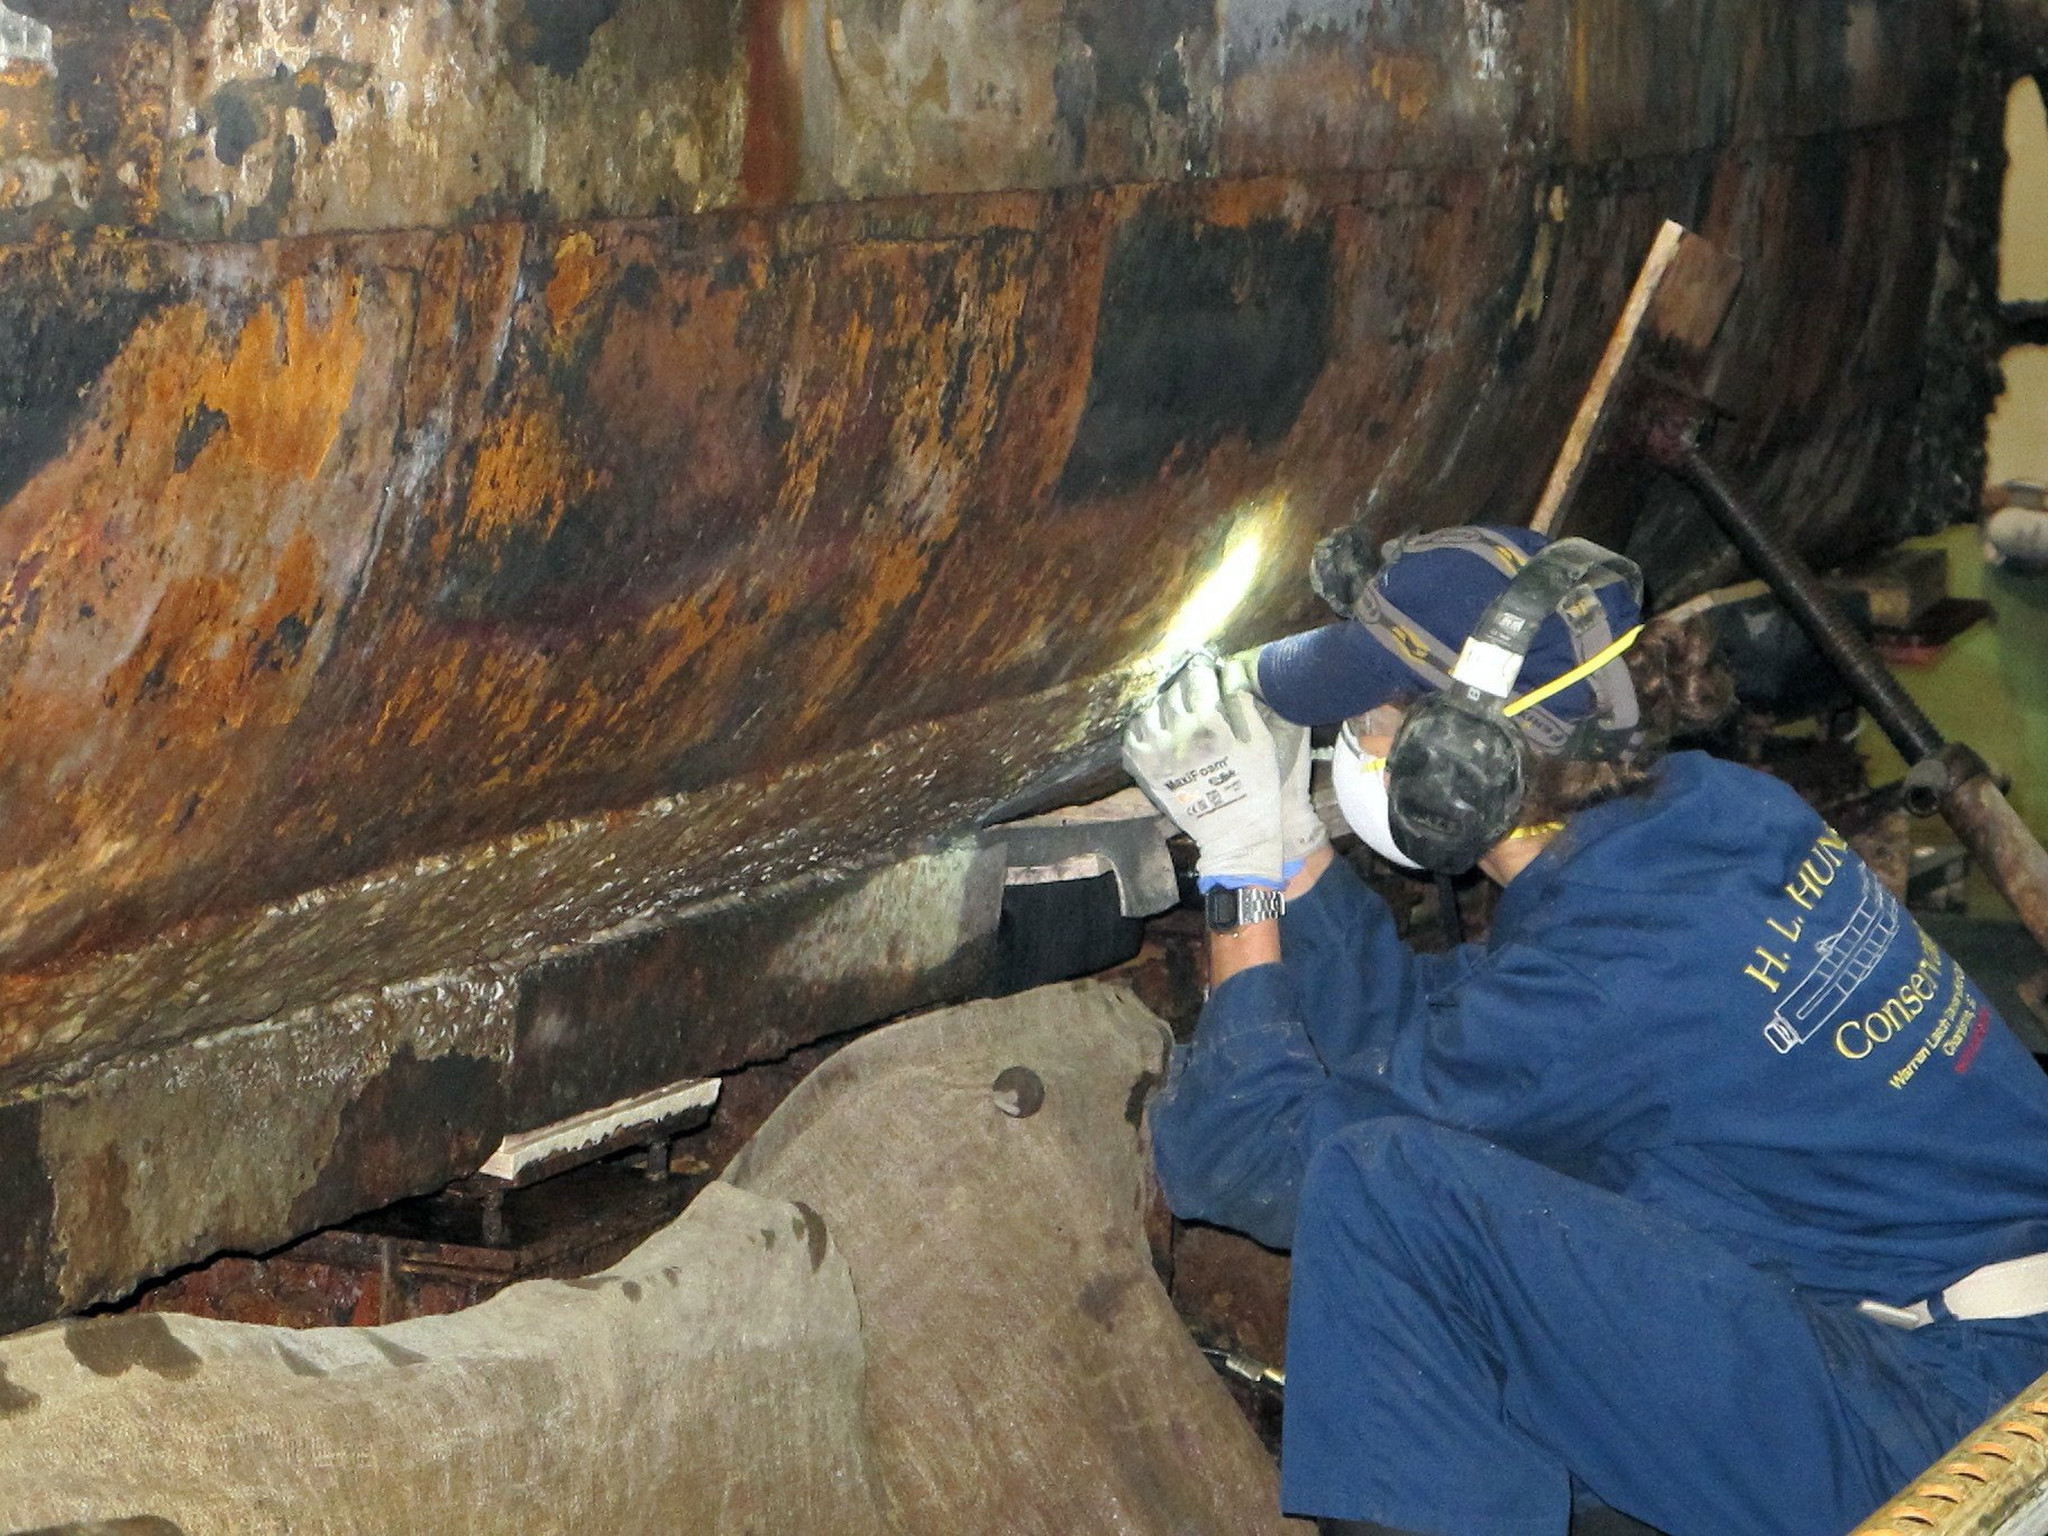 History of Submarine Hunley Marred by Conflicting Claims of Discovery